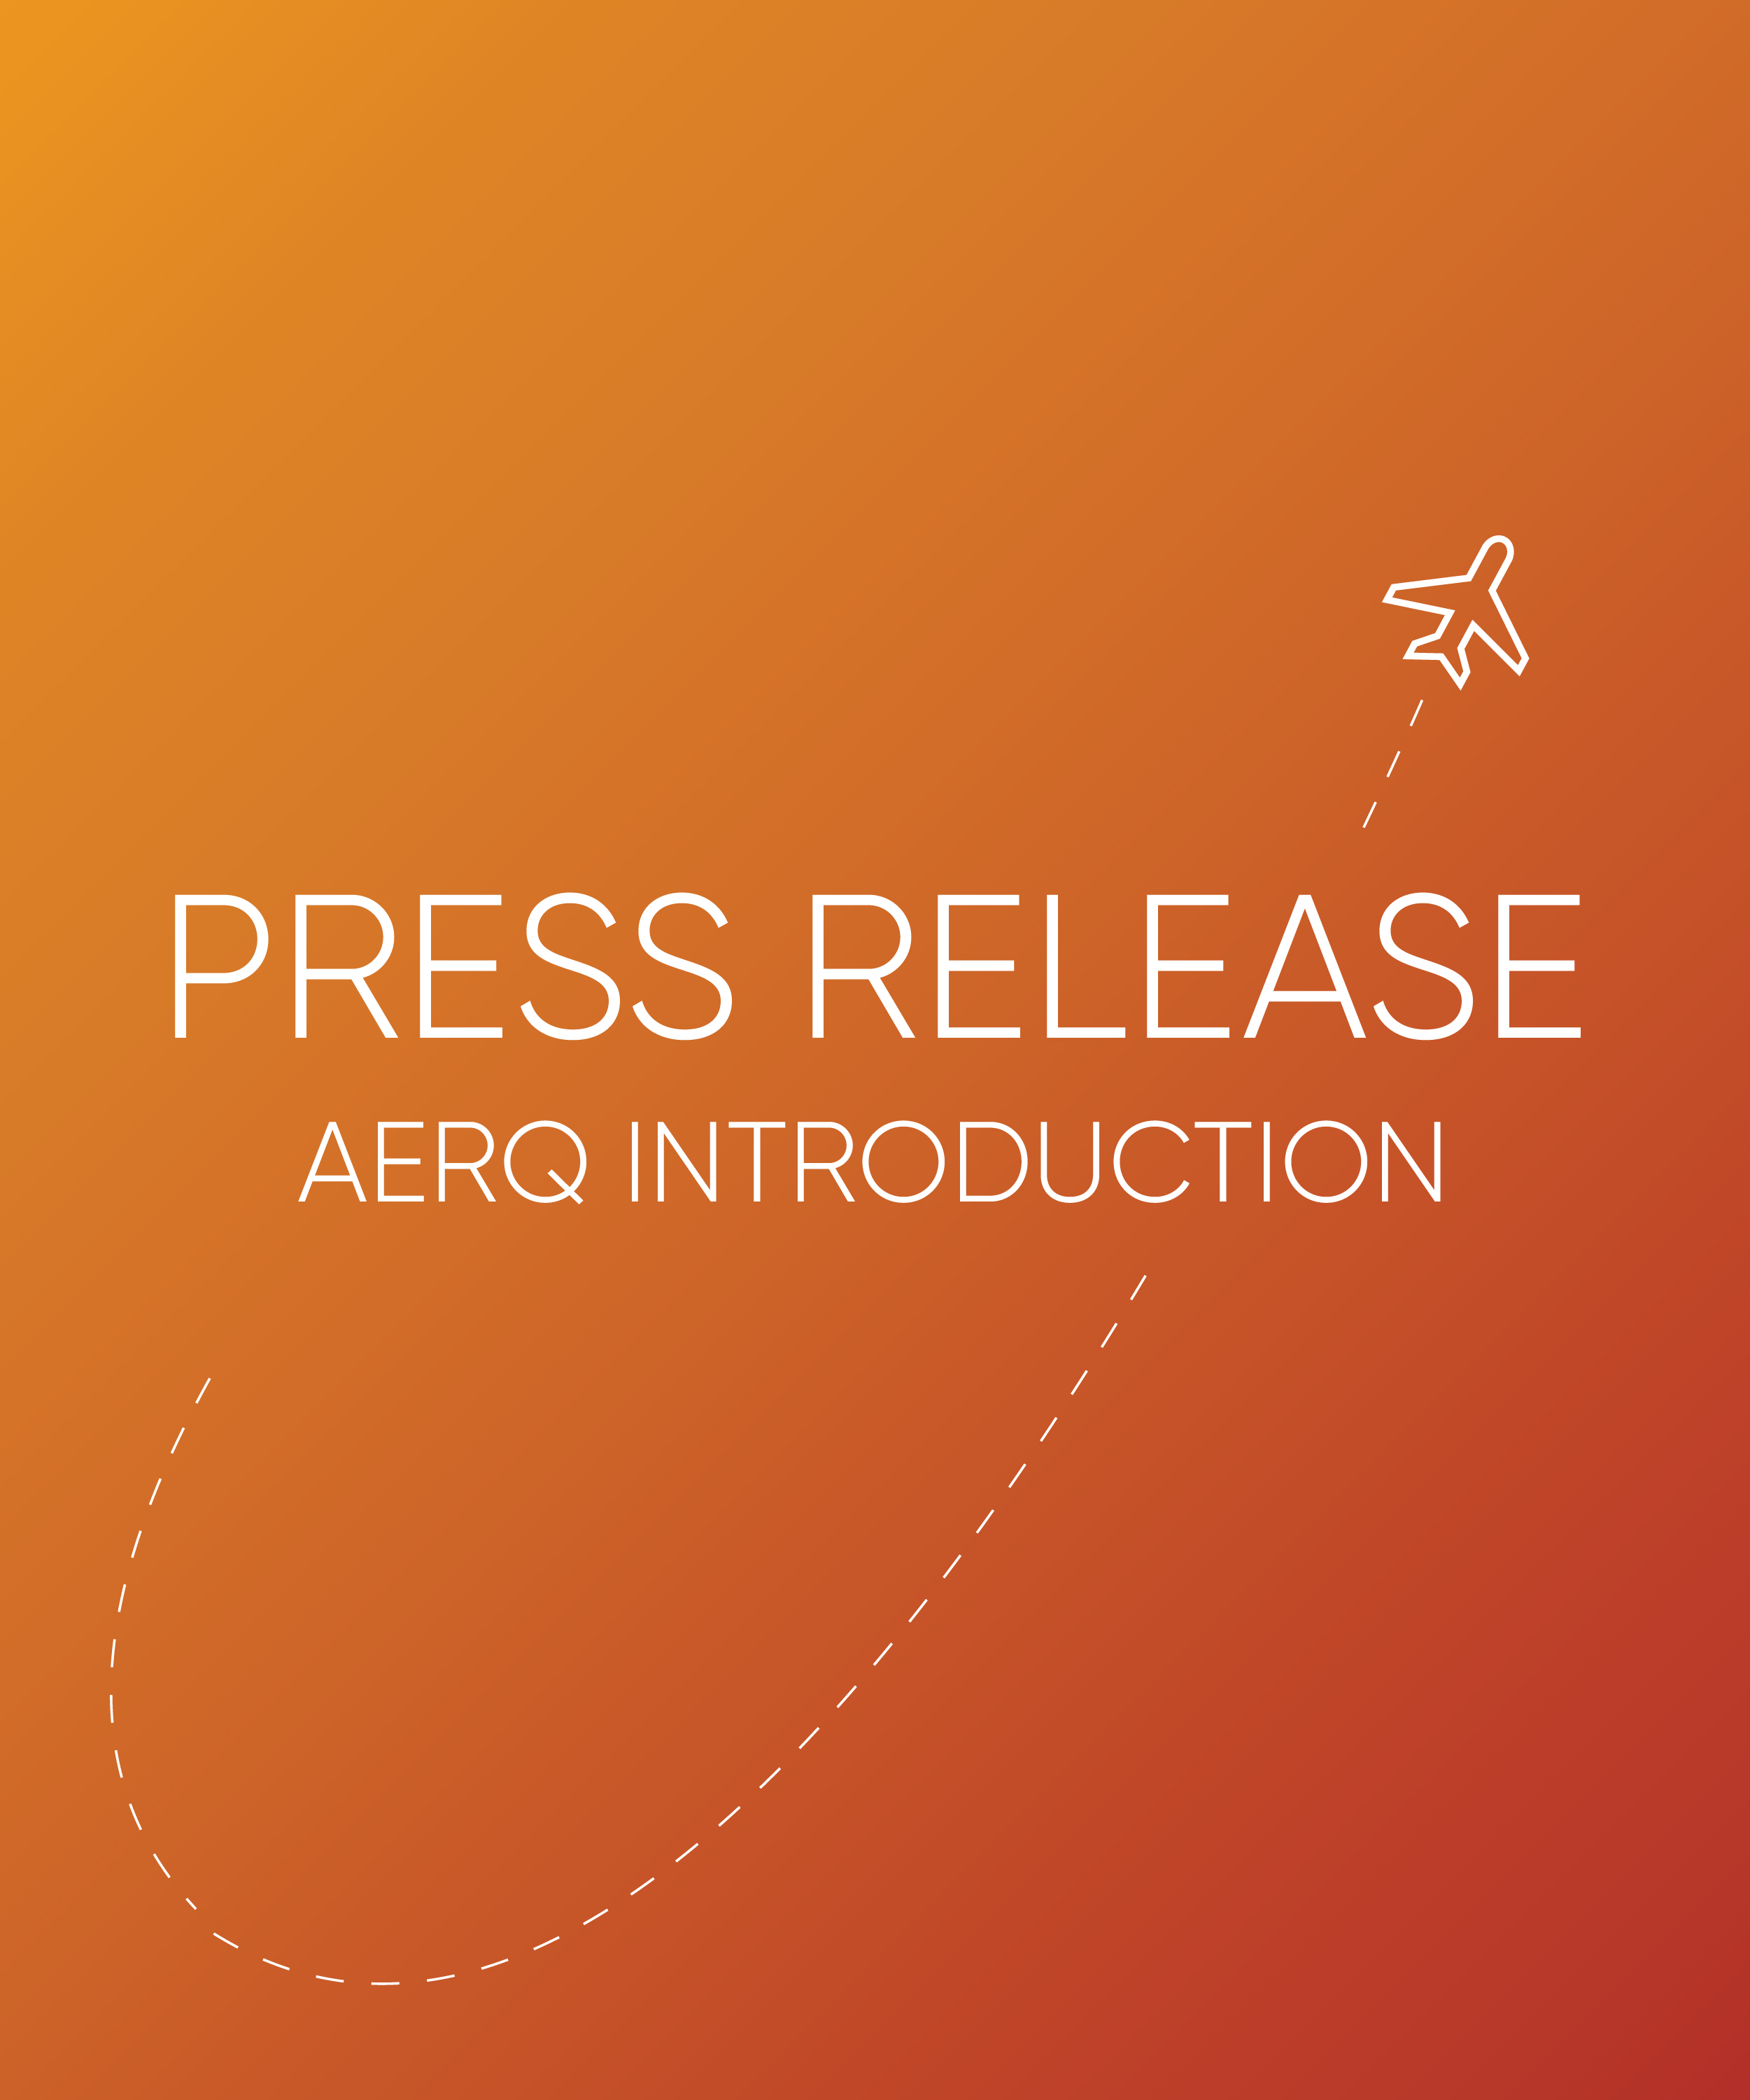 AERQ takes Digital Transformation of Aircraft Cabins to a New Level